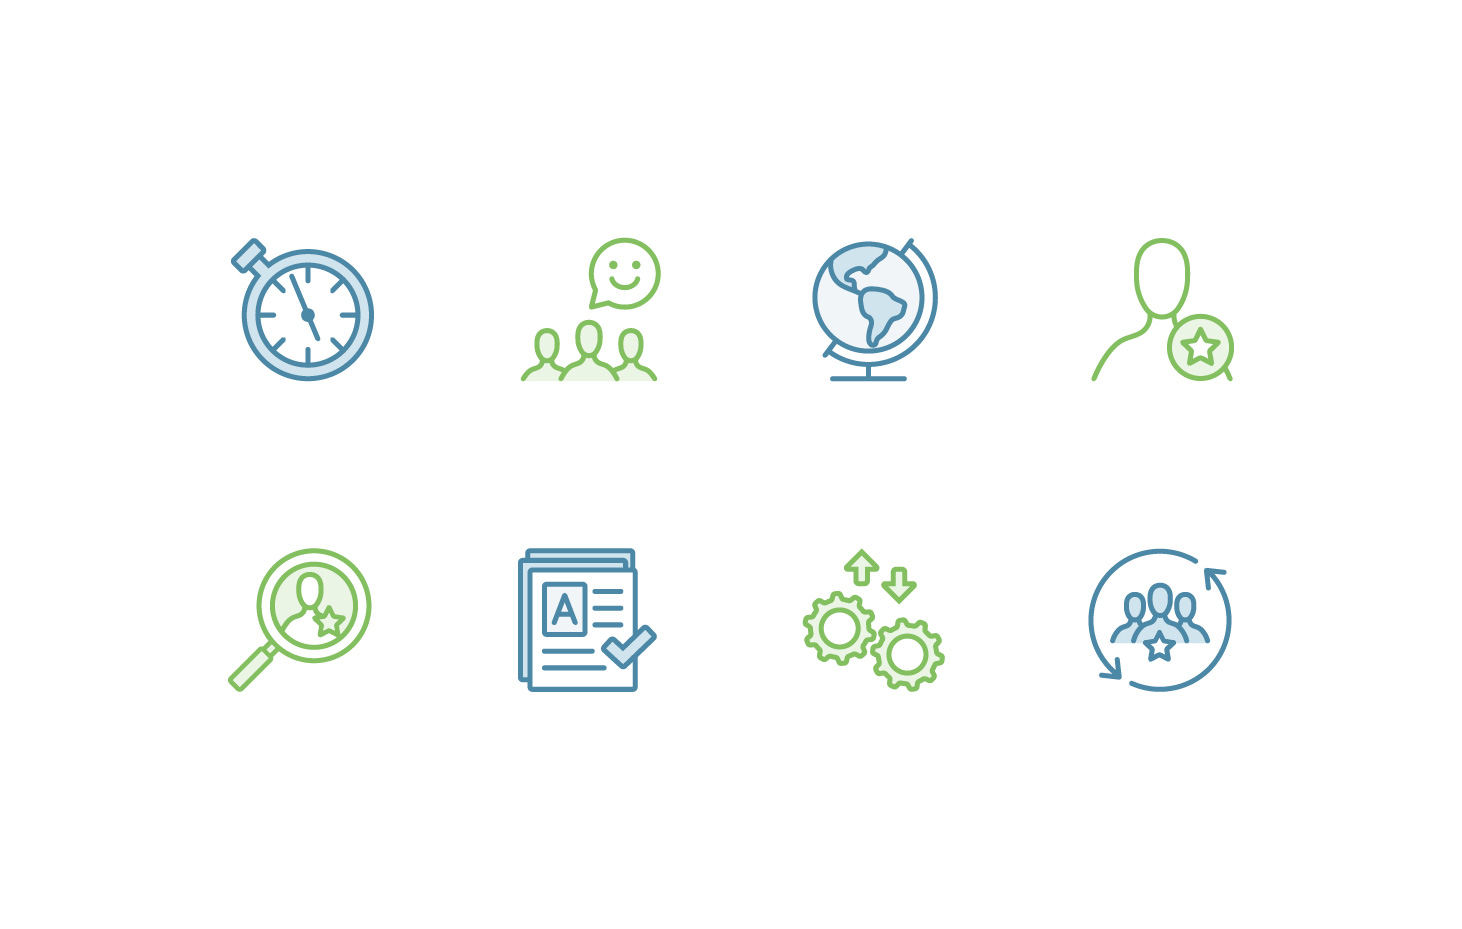 Line icons featuring a stopwatch, 3 figures with a smiley speech bubble, world globe, figure with a star badge, magnifying glass with figure and star, resume rated A with checkmark, gears with bi-directional arrows, 3 figures inside of circled arrows